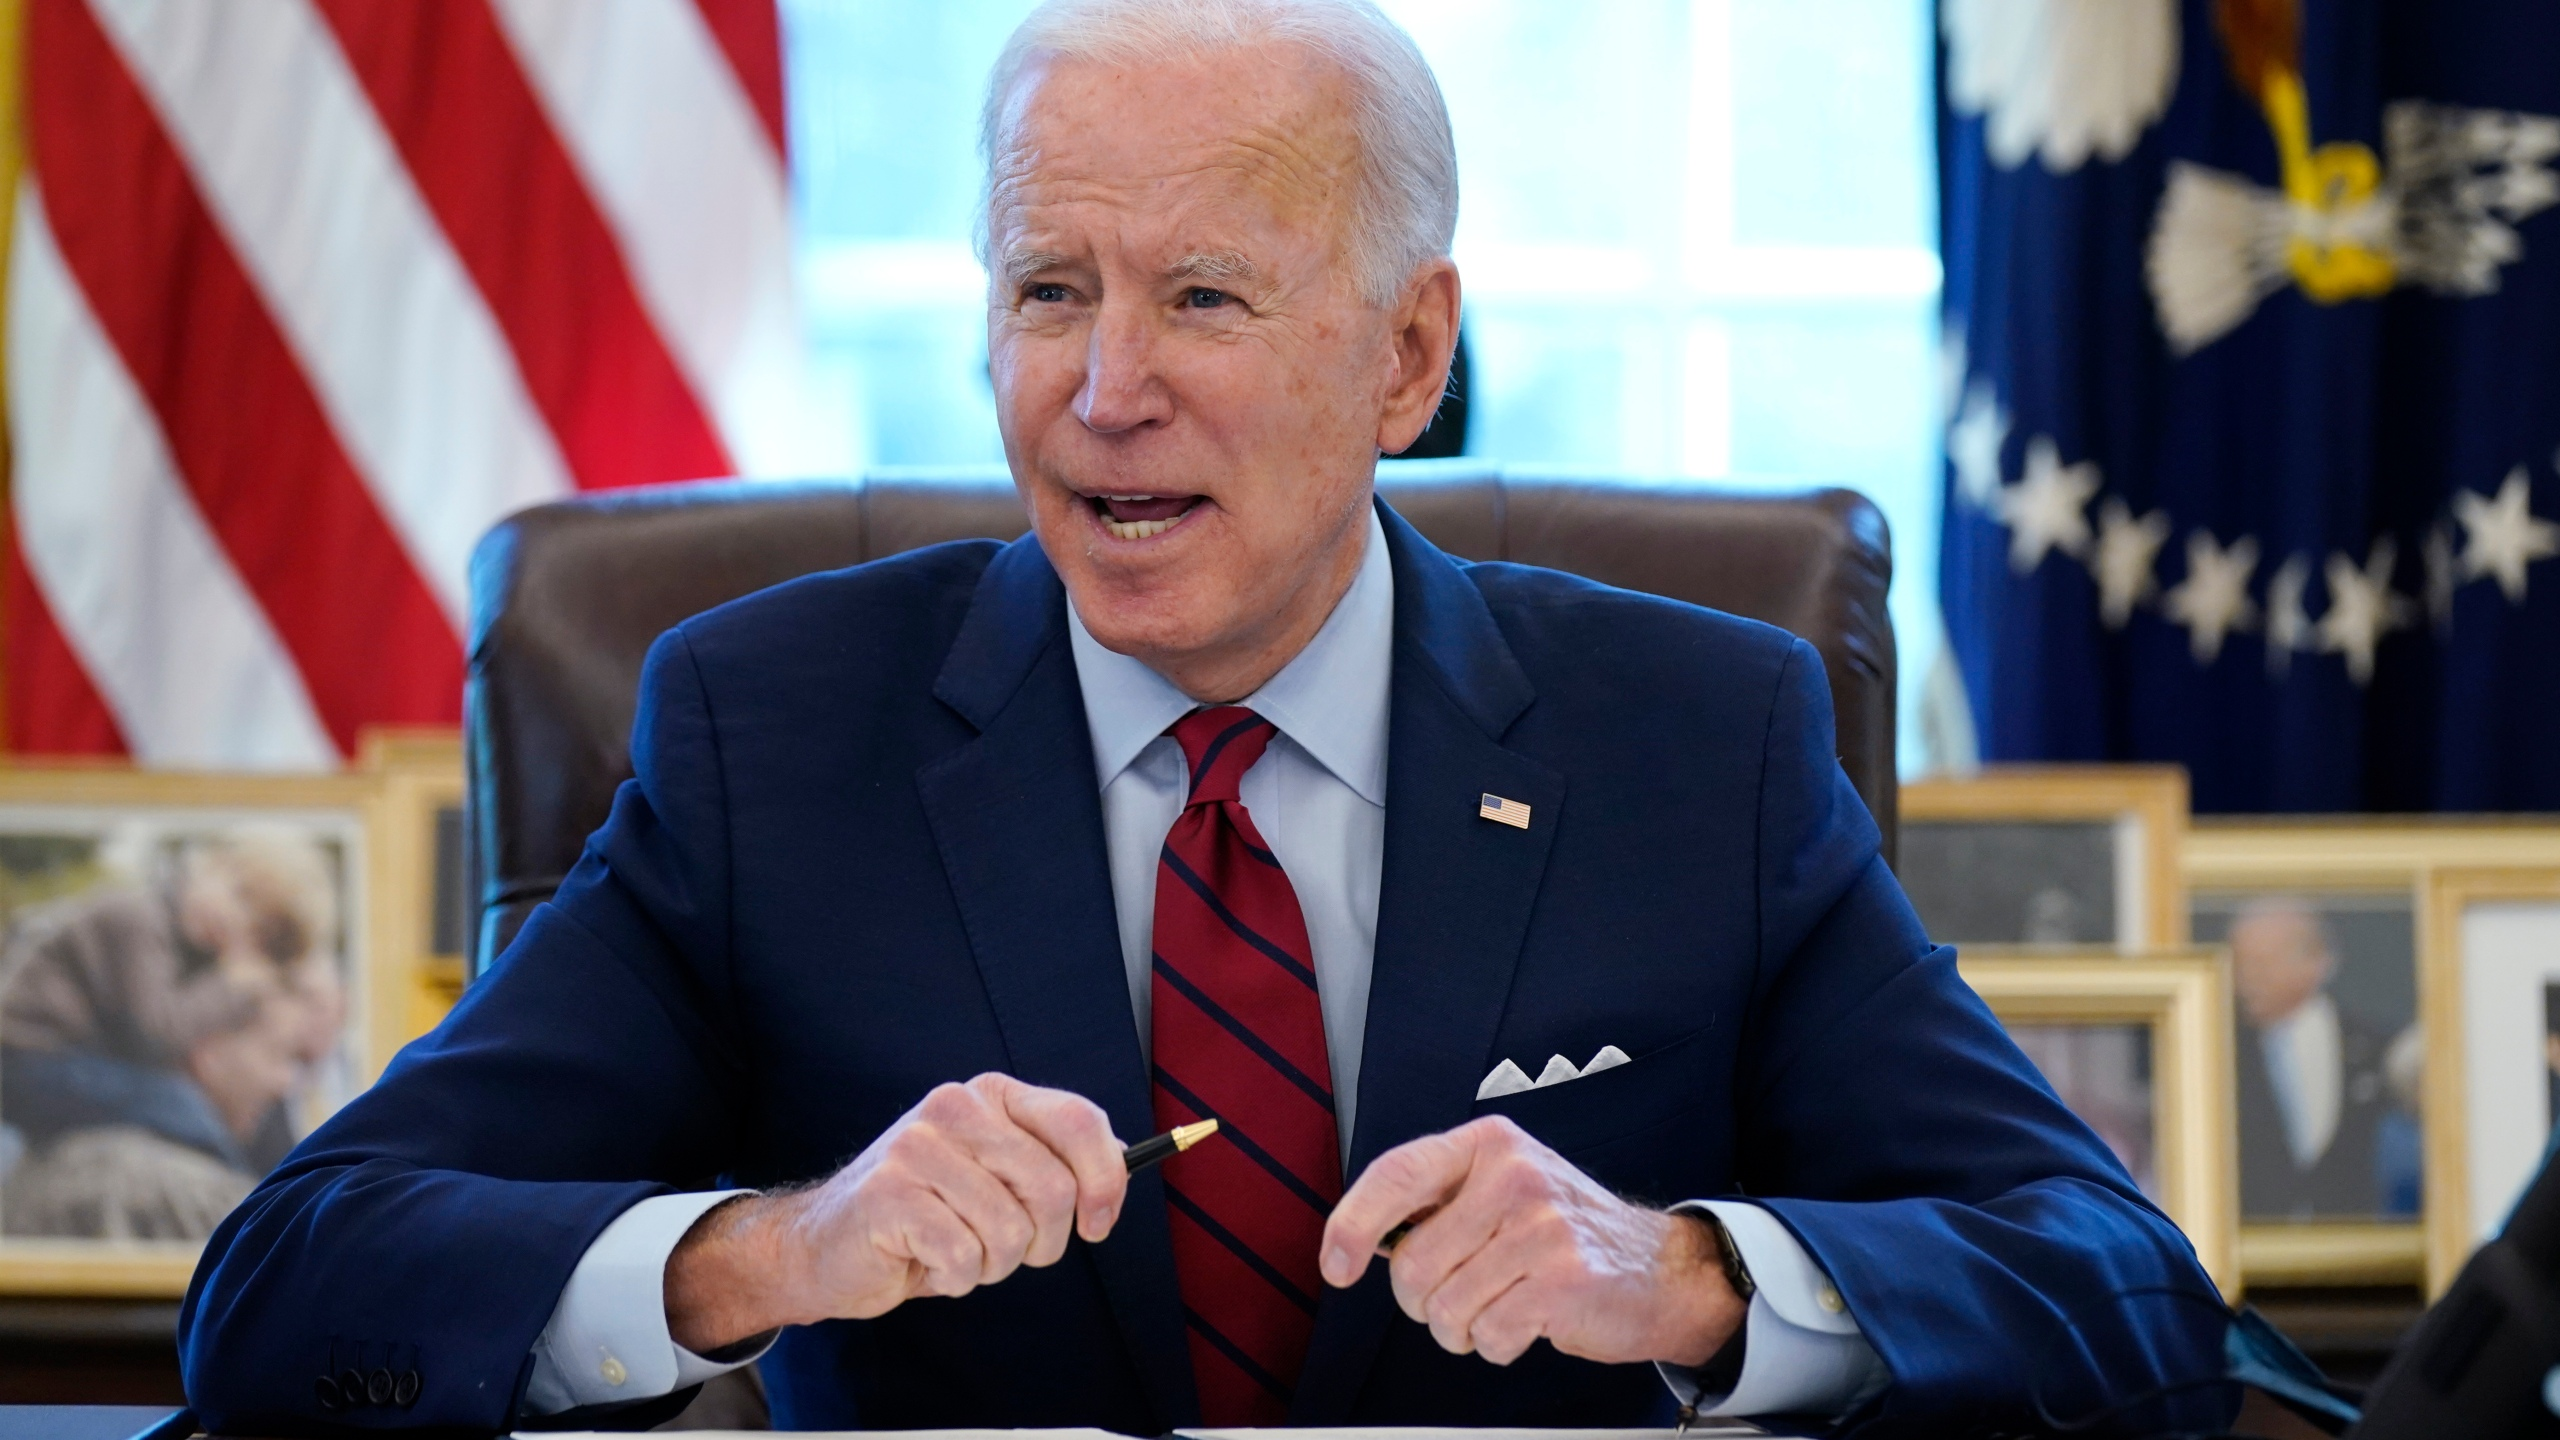 In this Jan. 28, 2021 file photo, President Joe Biden signs a series of executive orders in the Oval Office of the White House in Washington. Biden campaigned on raising the national minimum wage to $15 per hour and attached a proposal doing just that to the $1.9 trillion coronavirus pandemic relief bill. (AP Photo/Evan Vucci)